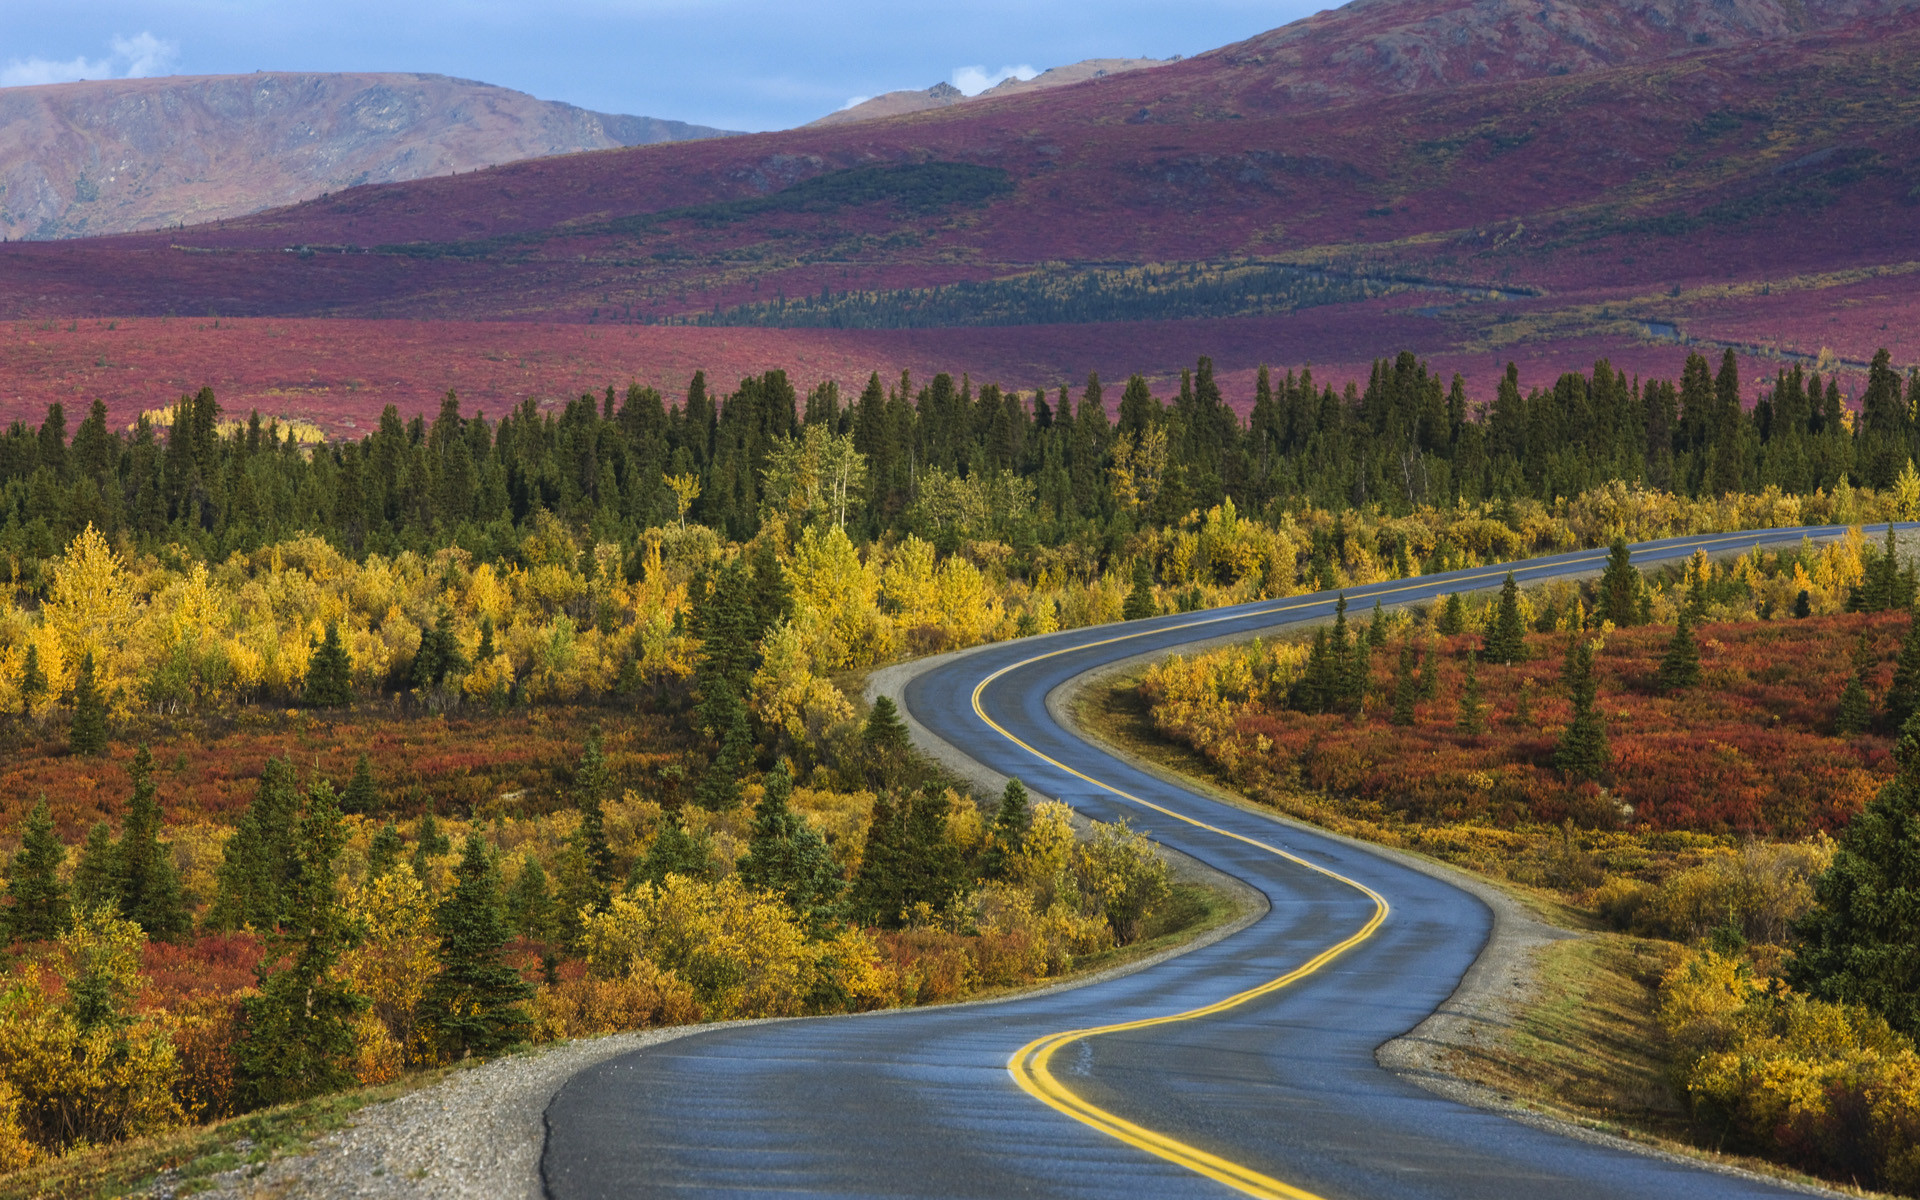 1920x1200 Windows 7 Desktop Backgrounds, Theme: American Road Trip